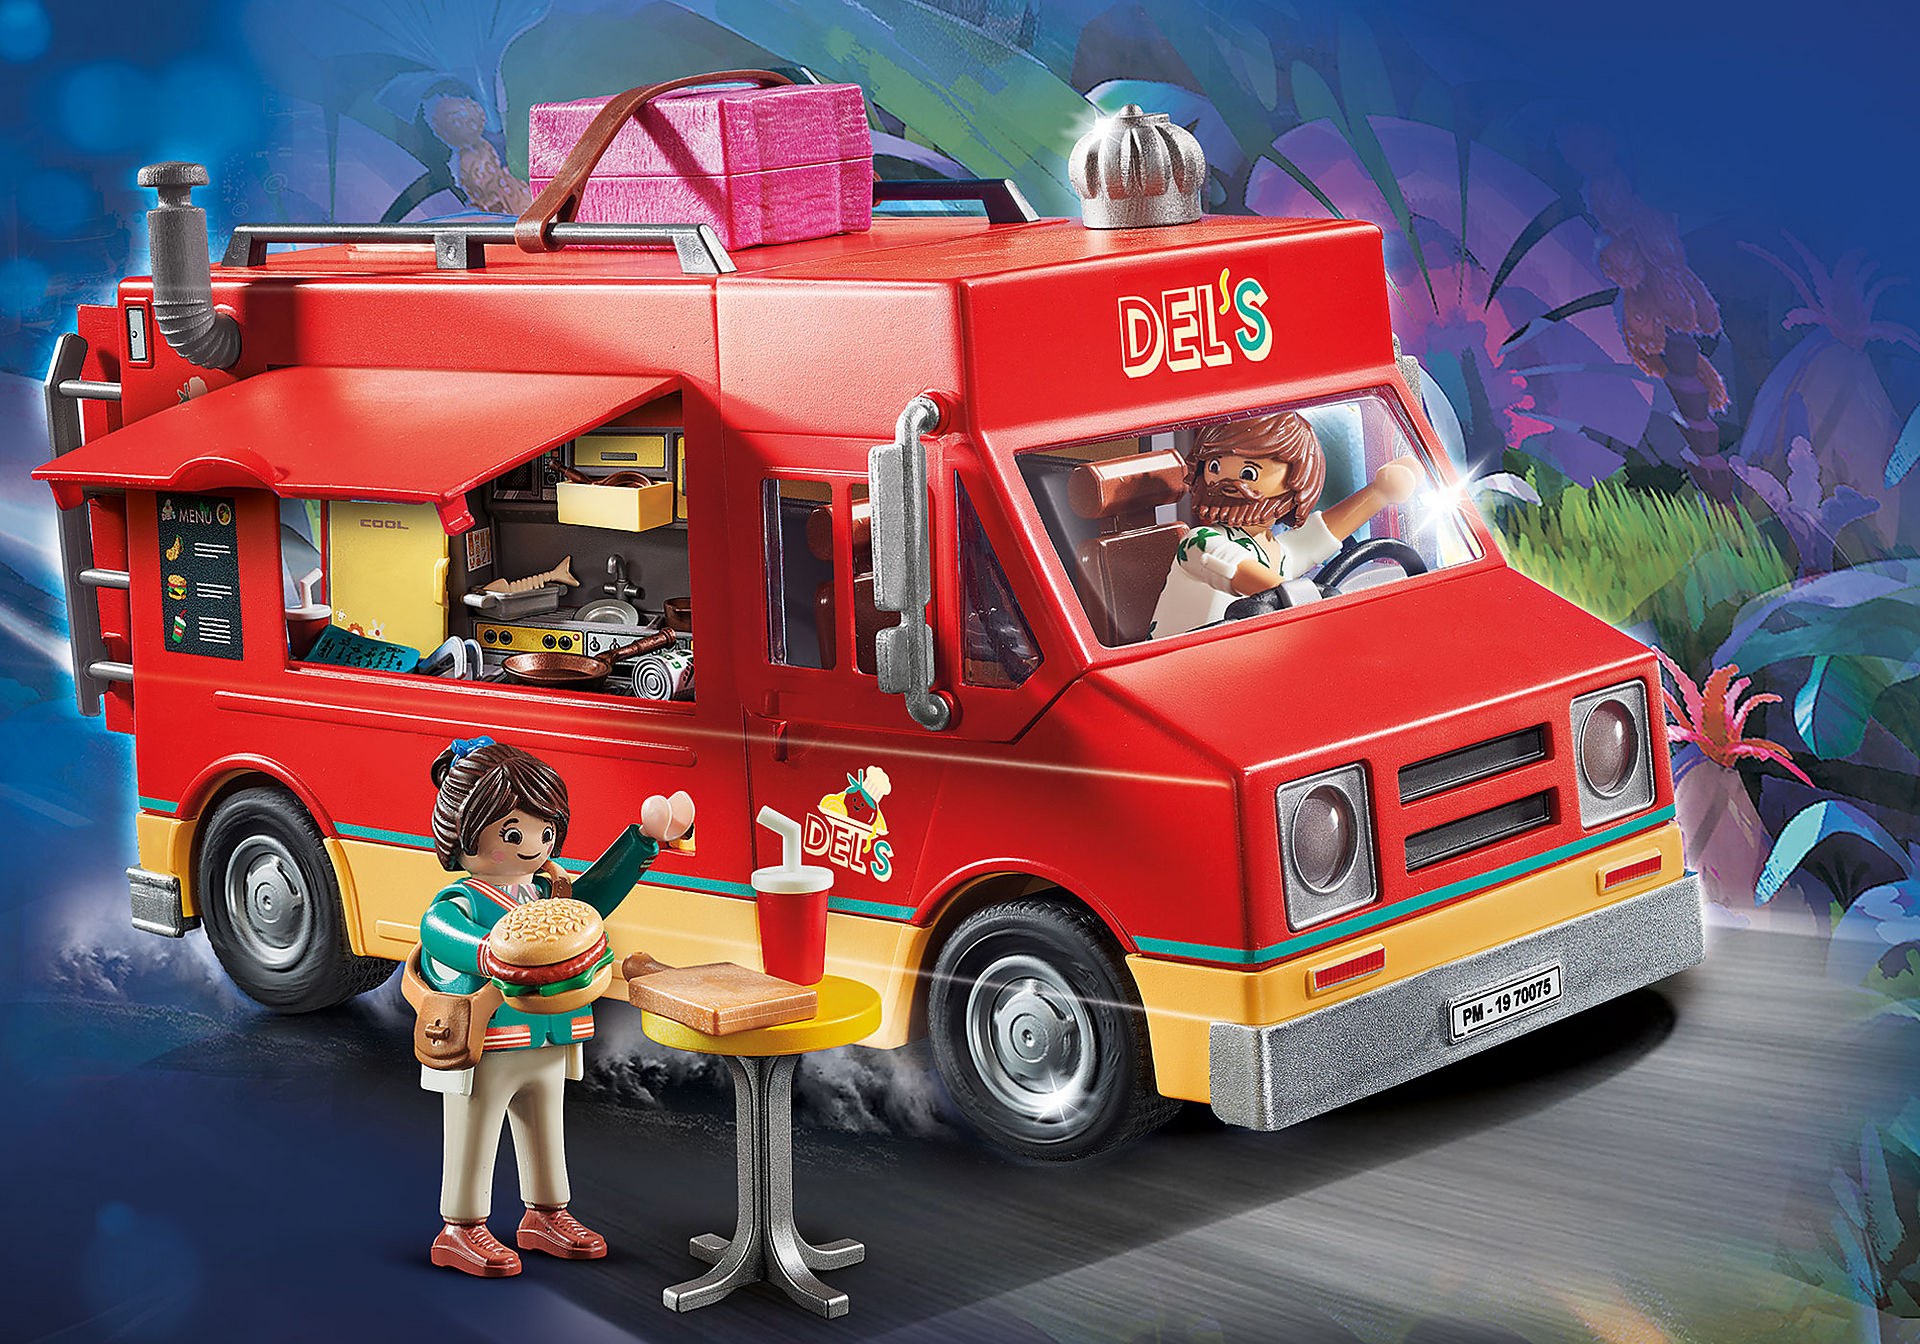 70075 PLAYMOBIL. THE MOVIE Carrinha da Comida do Del zoom image1